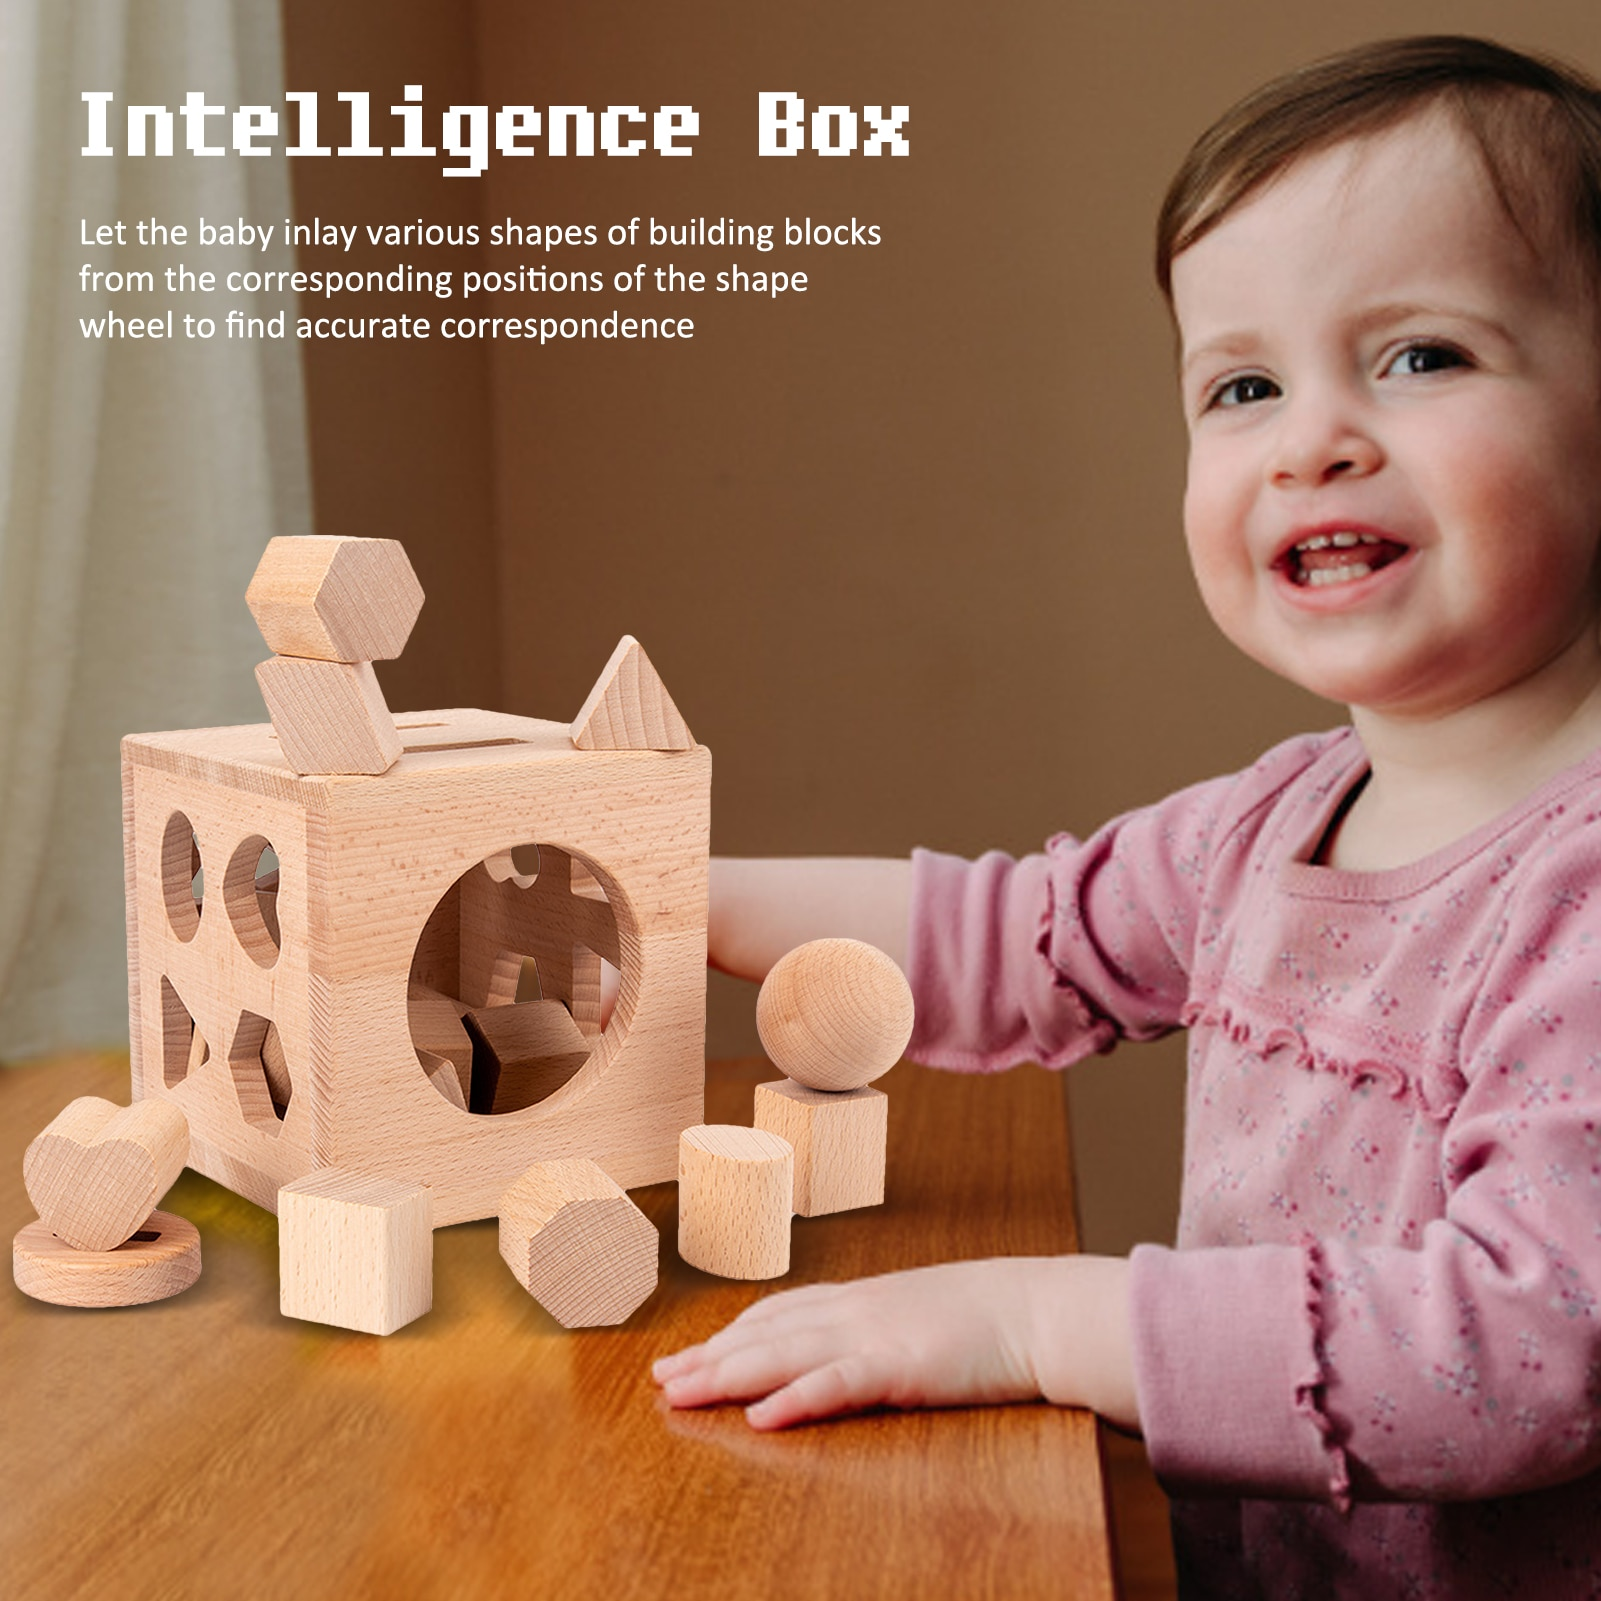 Kids Toys Wooden Shape Sort Geometric Shapes Building Blocks Matching Cognition Baby Early Educational Toys For Children Gift baby recognition color logic intelligence toys geometric bricks cube matching building blocks toy baby early education gift toy